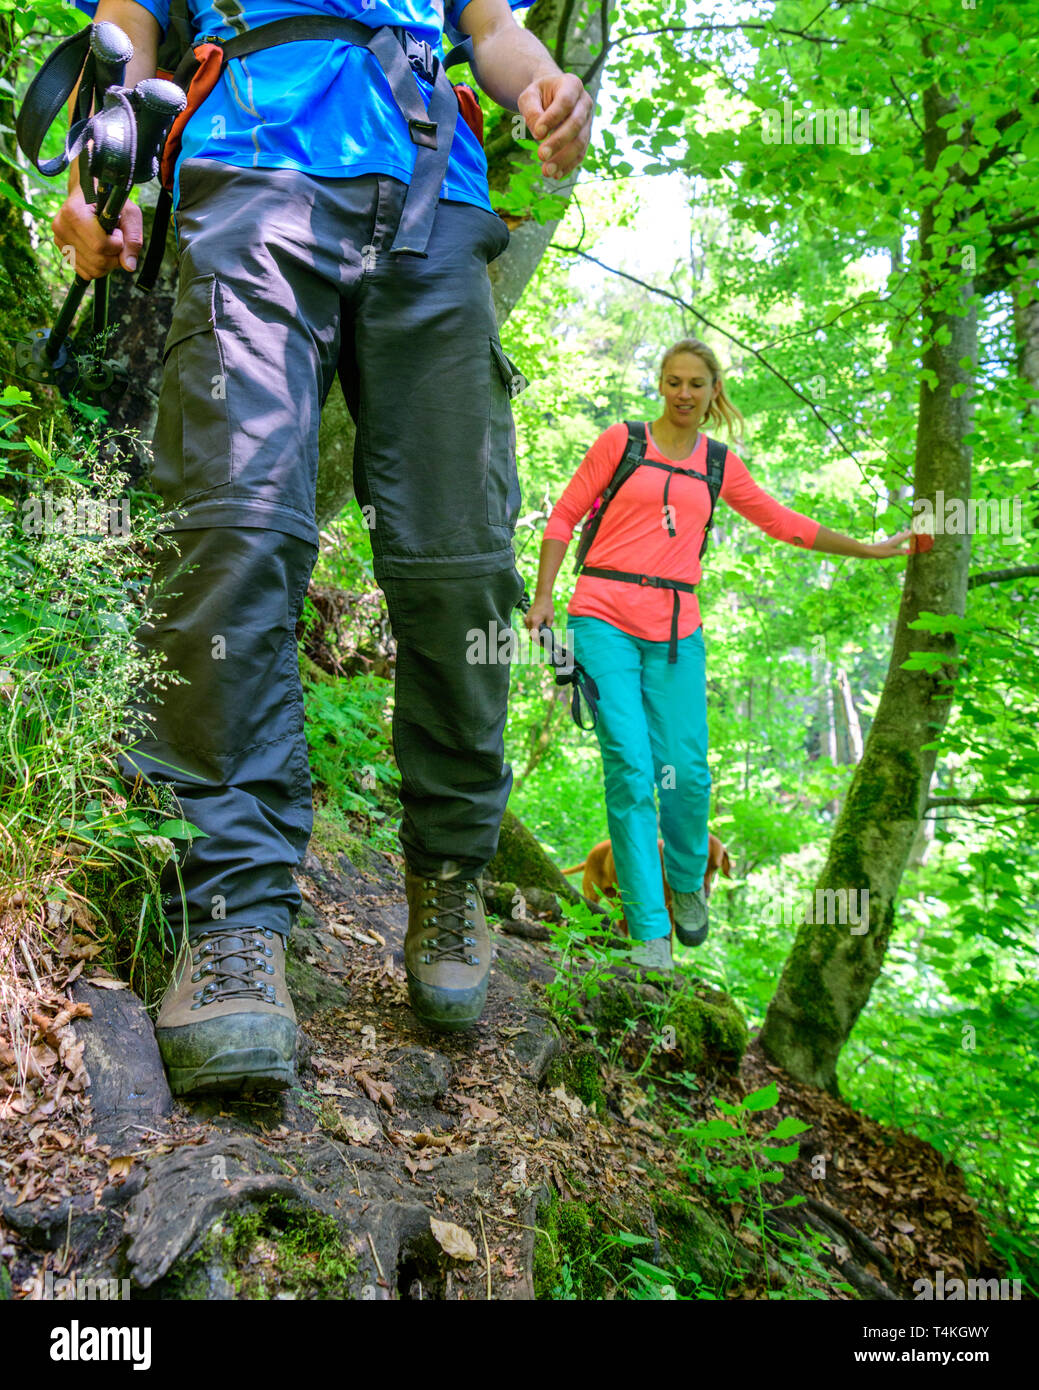 Hiking on an exciting and challenging trail in forest - Stock Image